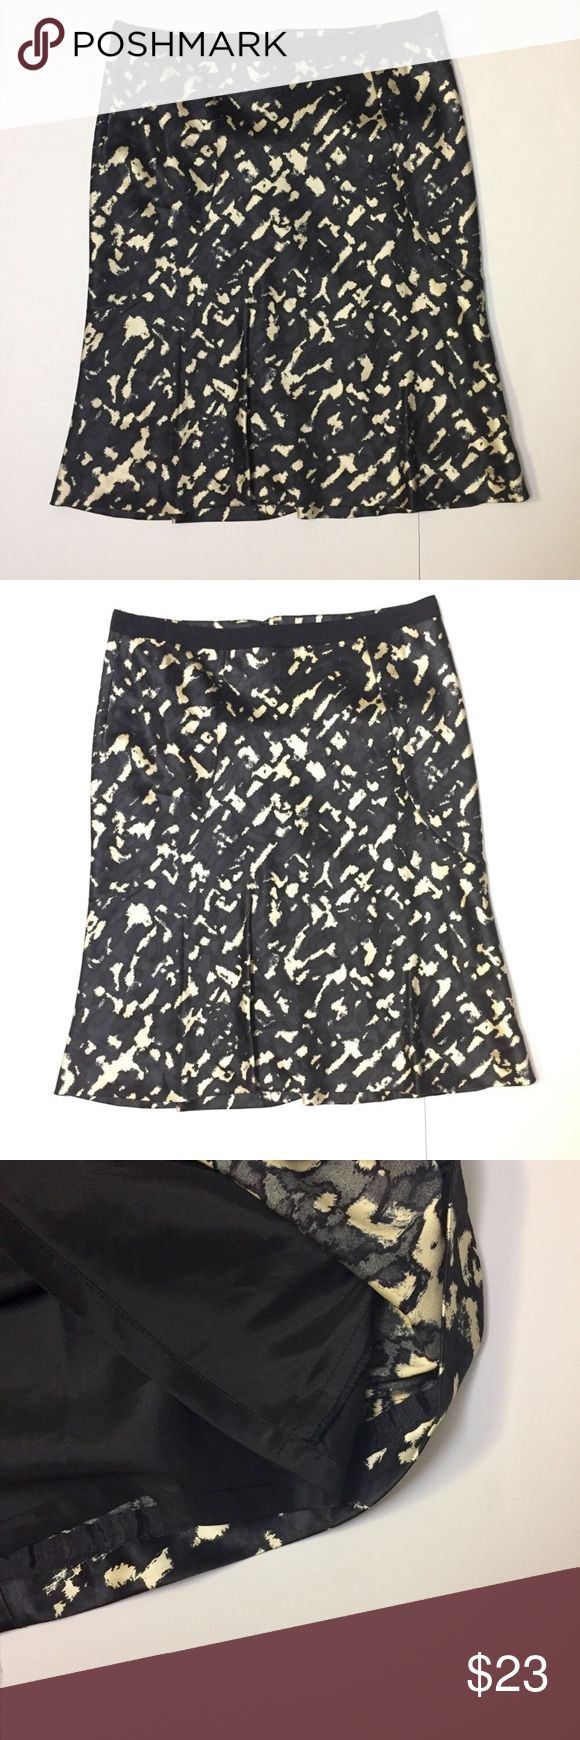 Ann Taylor silk black and cream color pencil skirt Ann Taylor silk black and cream color pencil skirt. In like new condition. No flaws. Fully lined. Back hidden zipper. Very wellmade. Fitted from hips. Size is 8. Ann Taylor Skirts Pencil